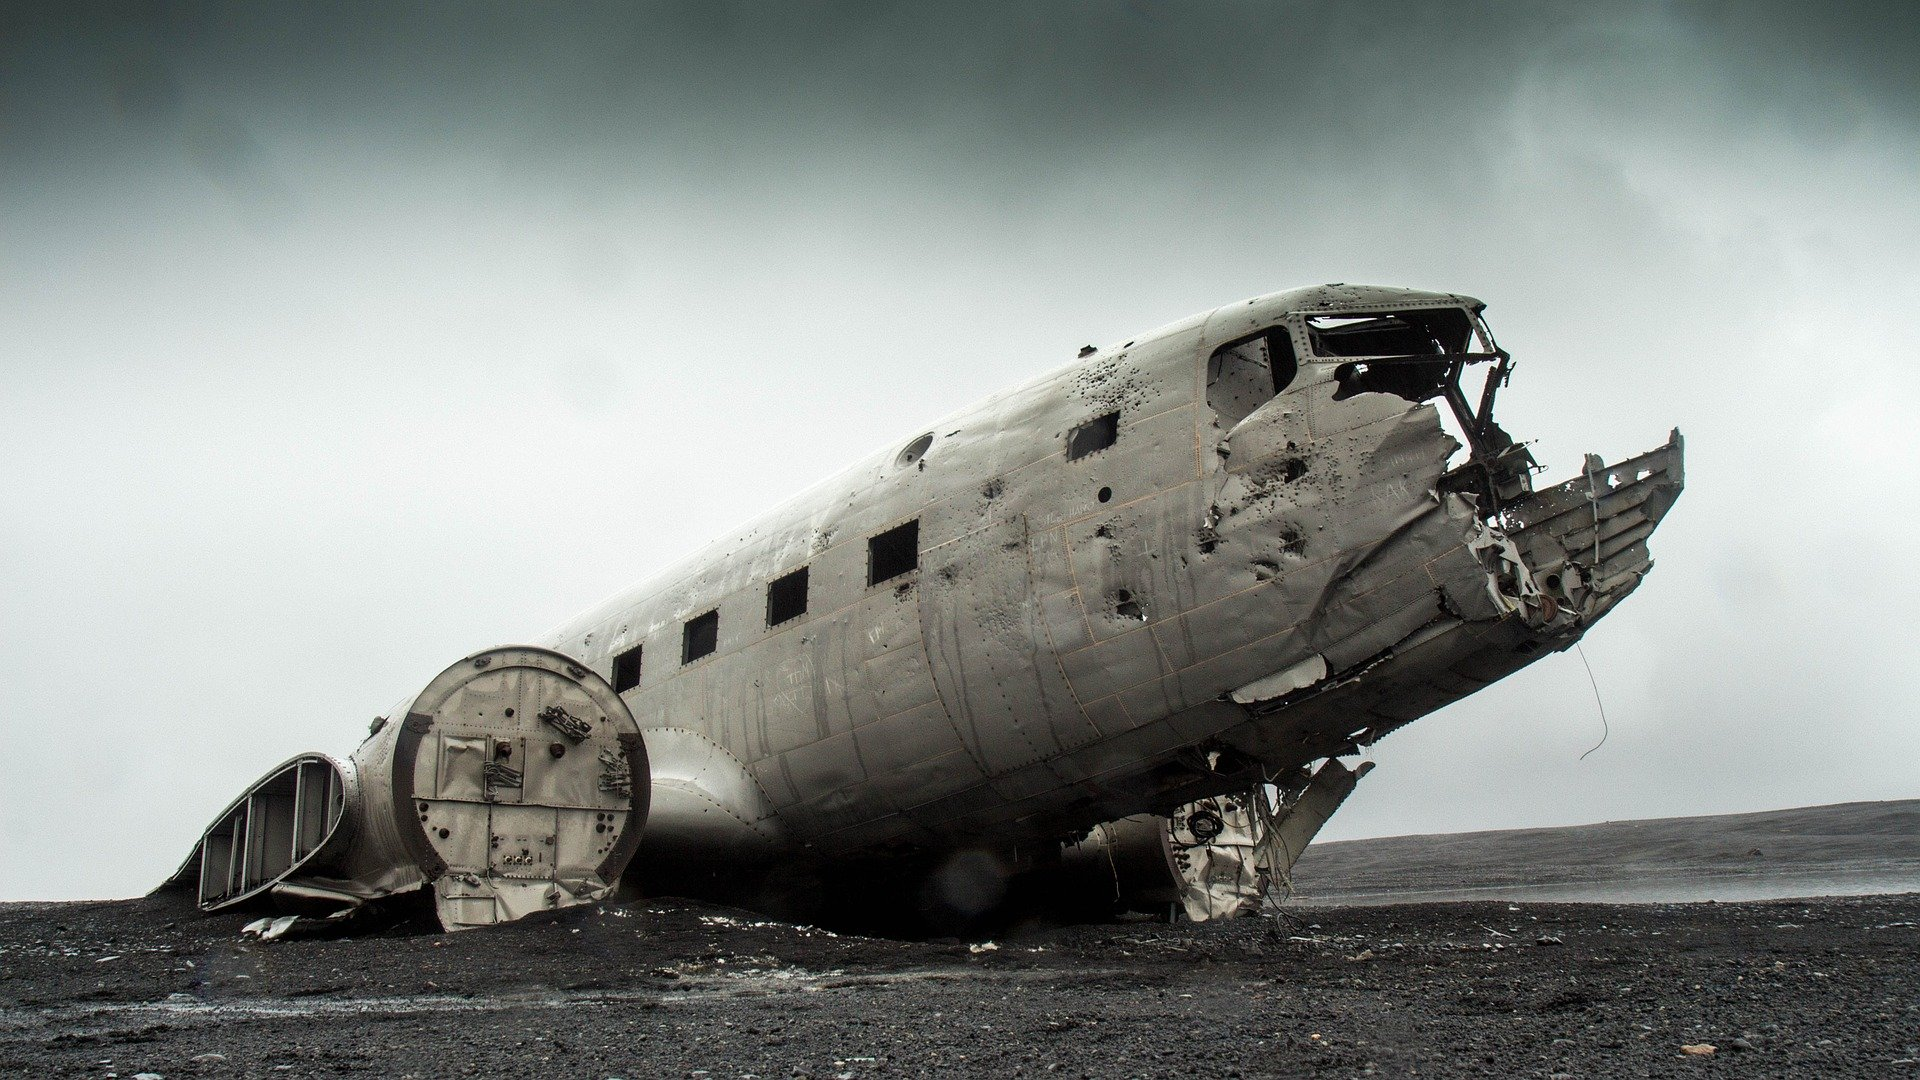 an old plane with a damaged nose